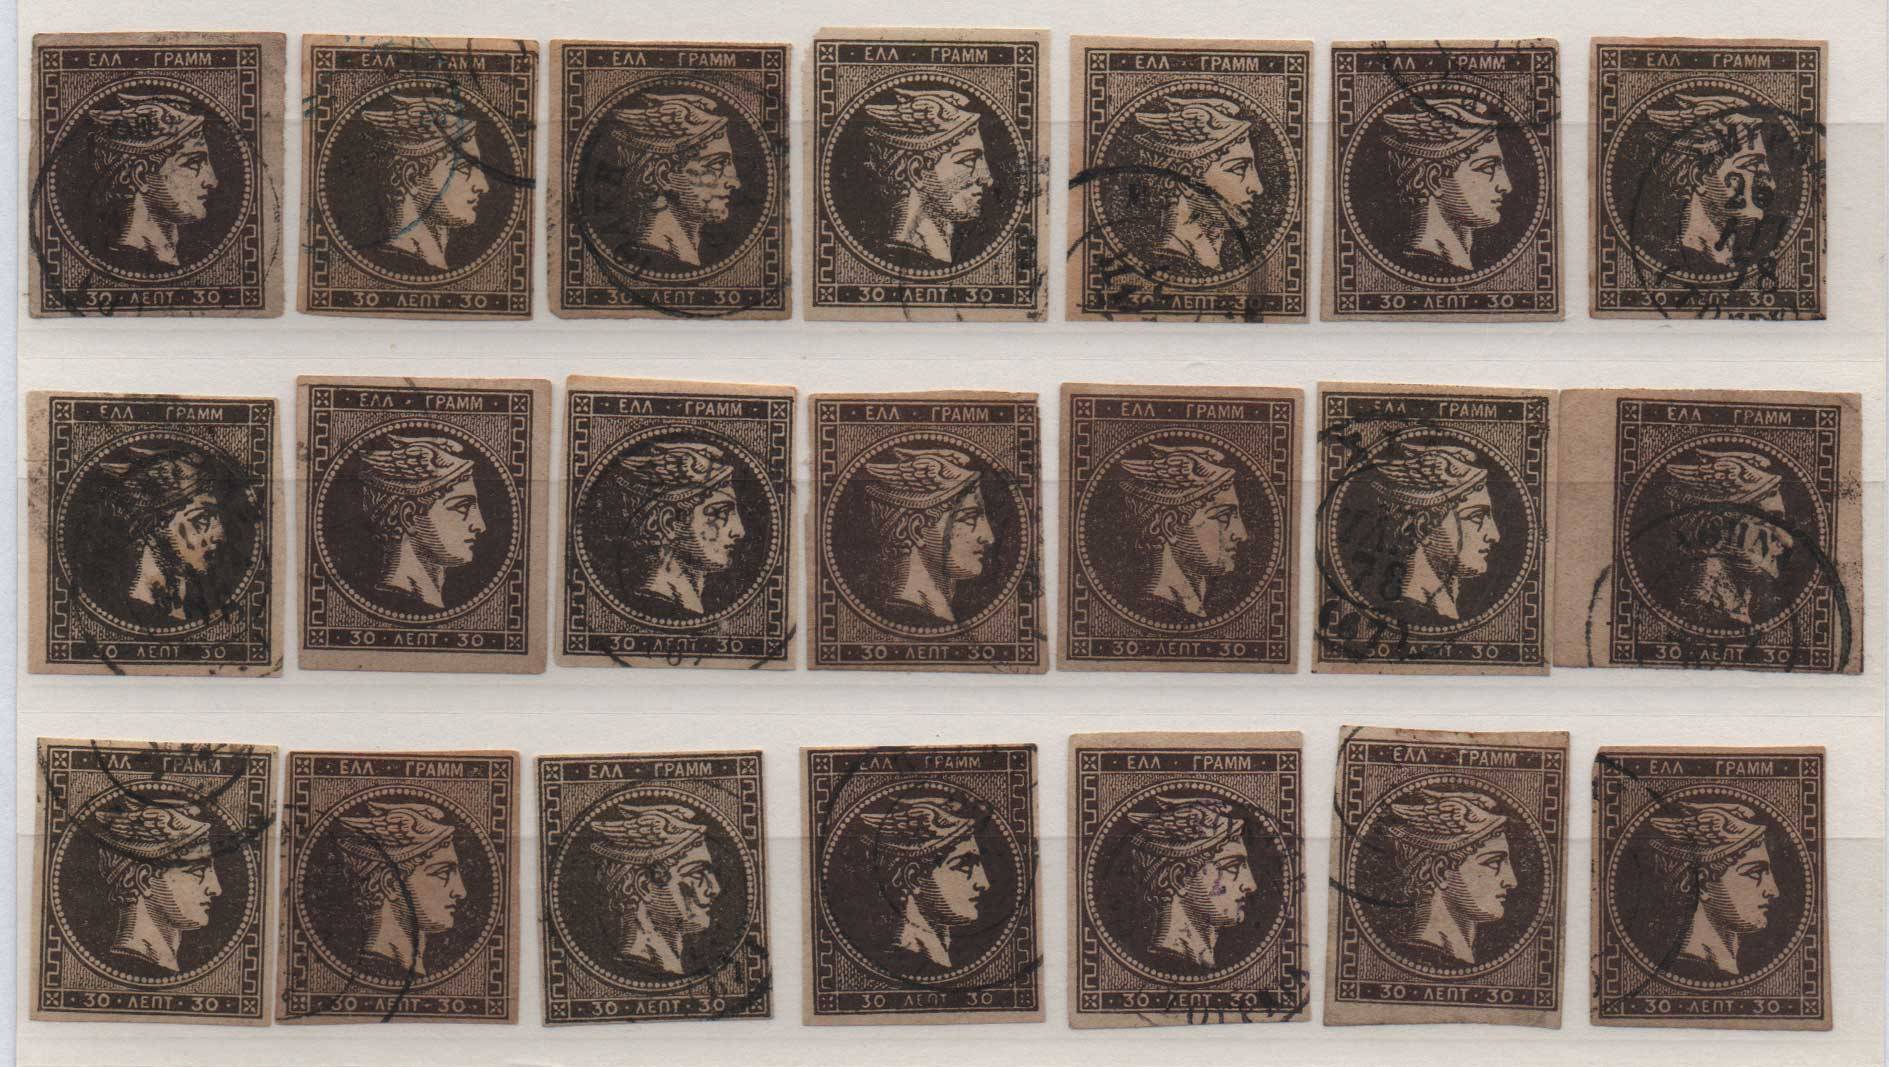 Lot 17 - -  LARGE HERMES HEAD large hermes head -  Athens Auctions Public Auction 69 General Stamp Sale